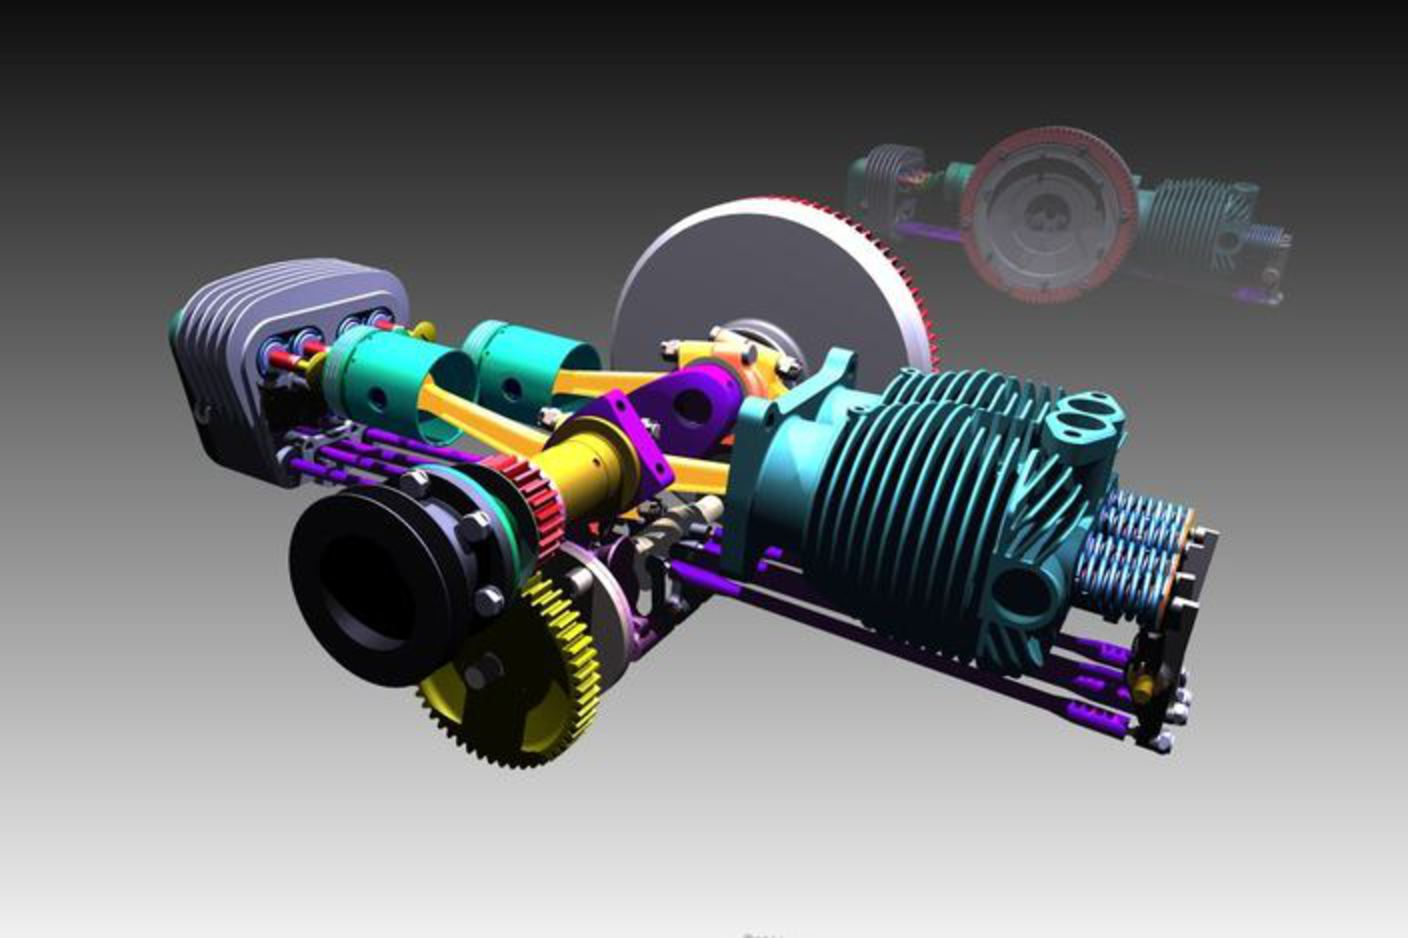 Tatra t57 engine - Autodesk Inventor, Other - 3D CAD model - GrabCAD